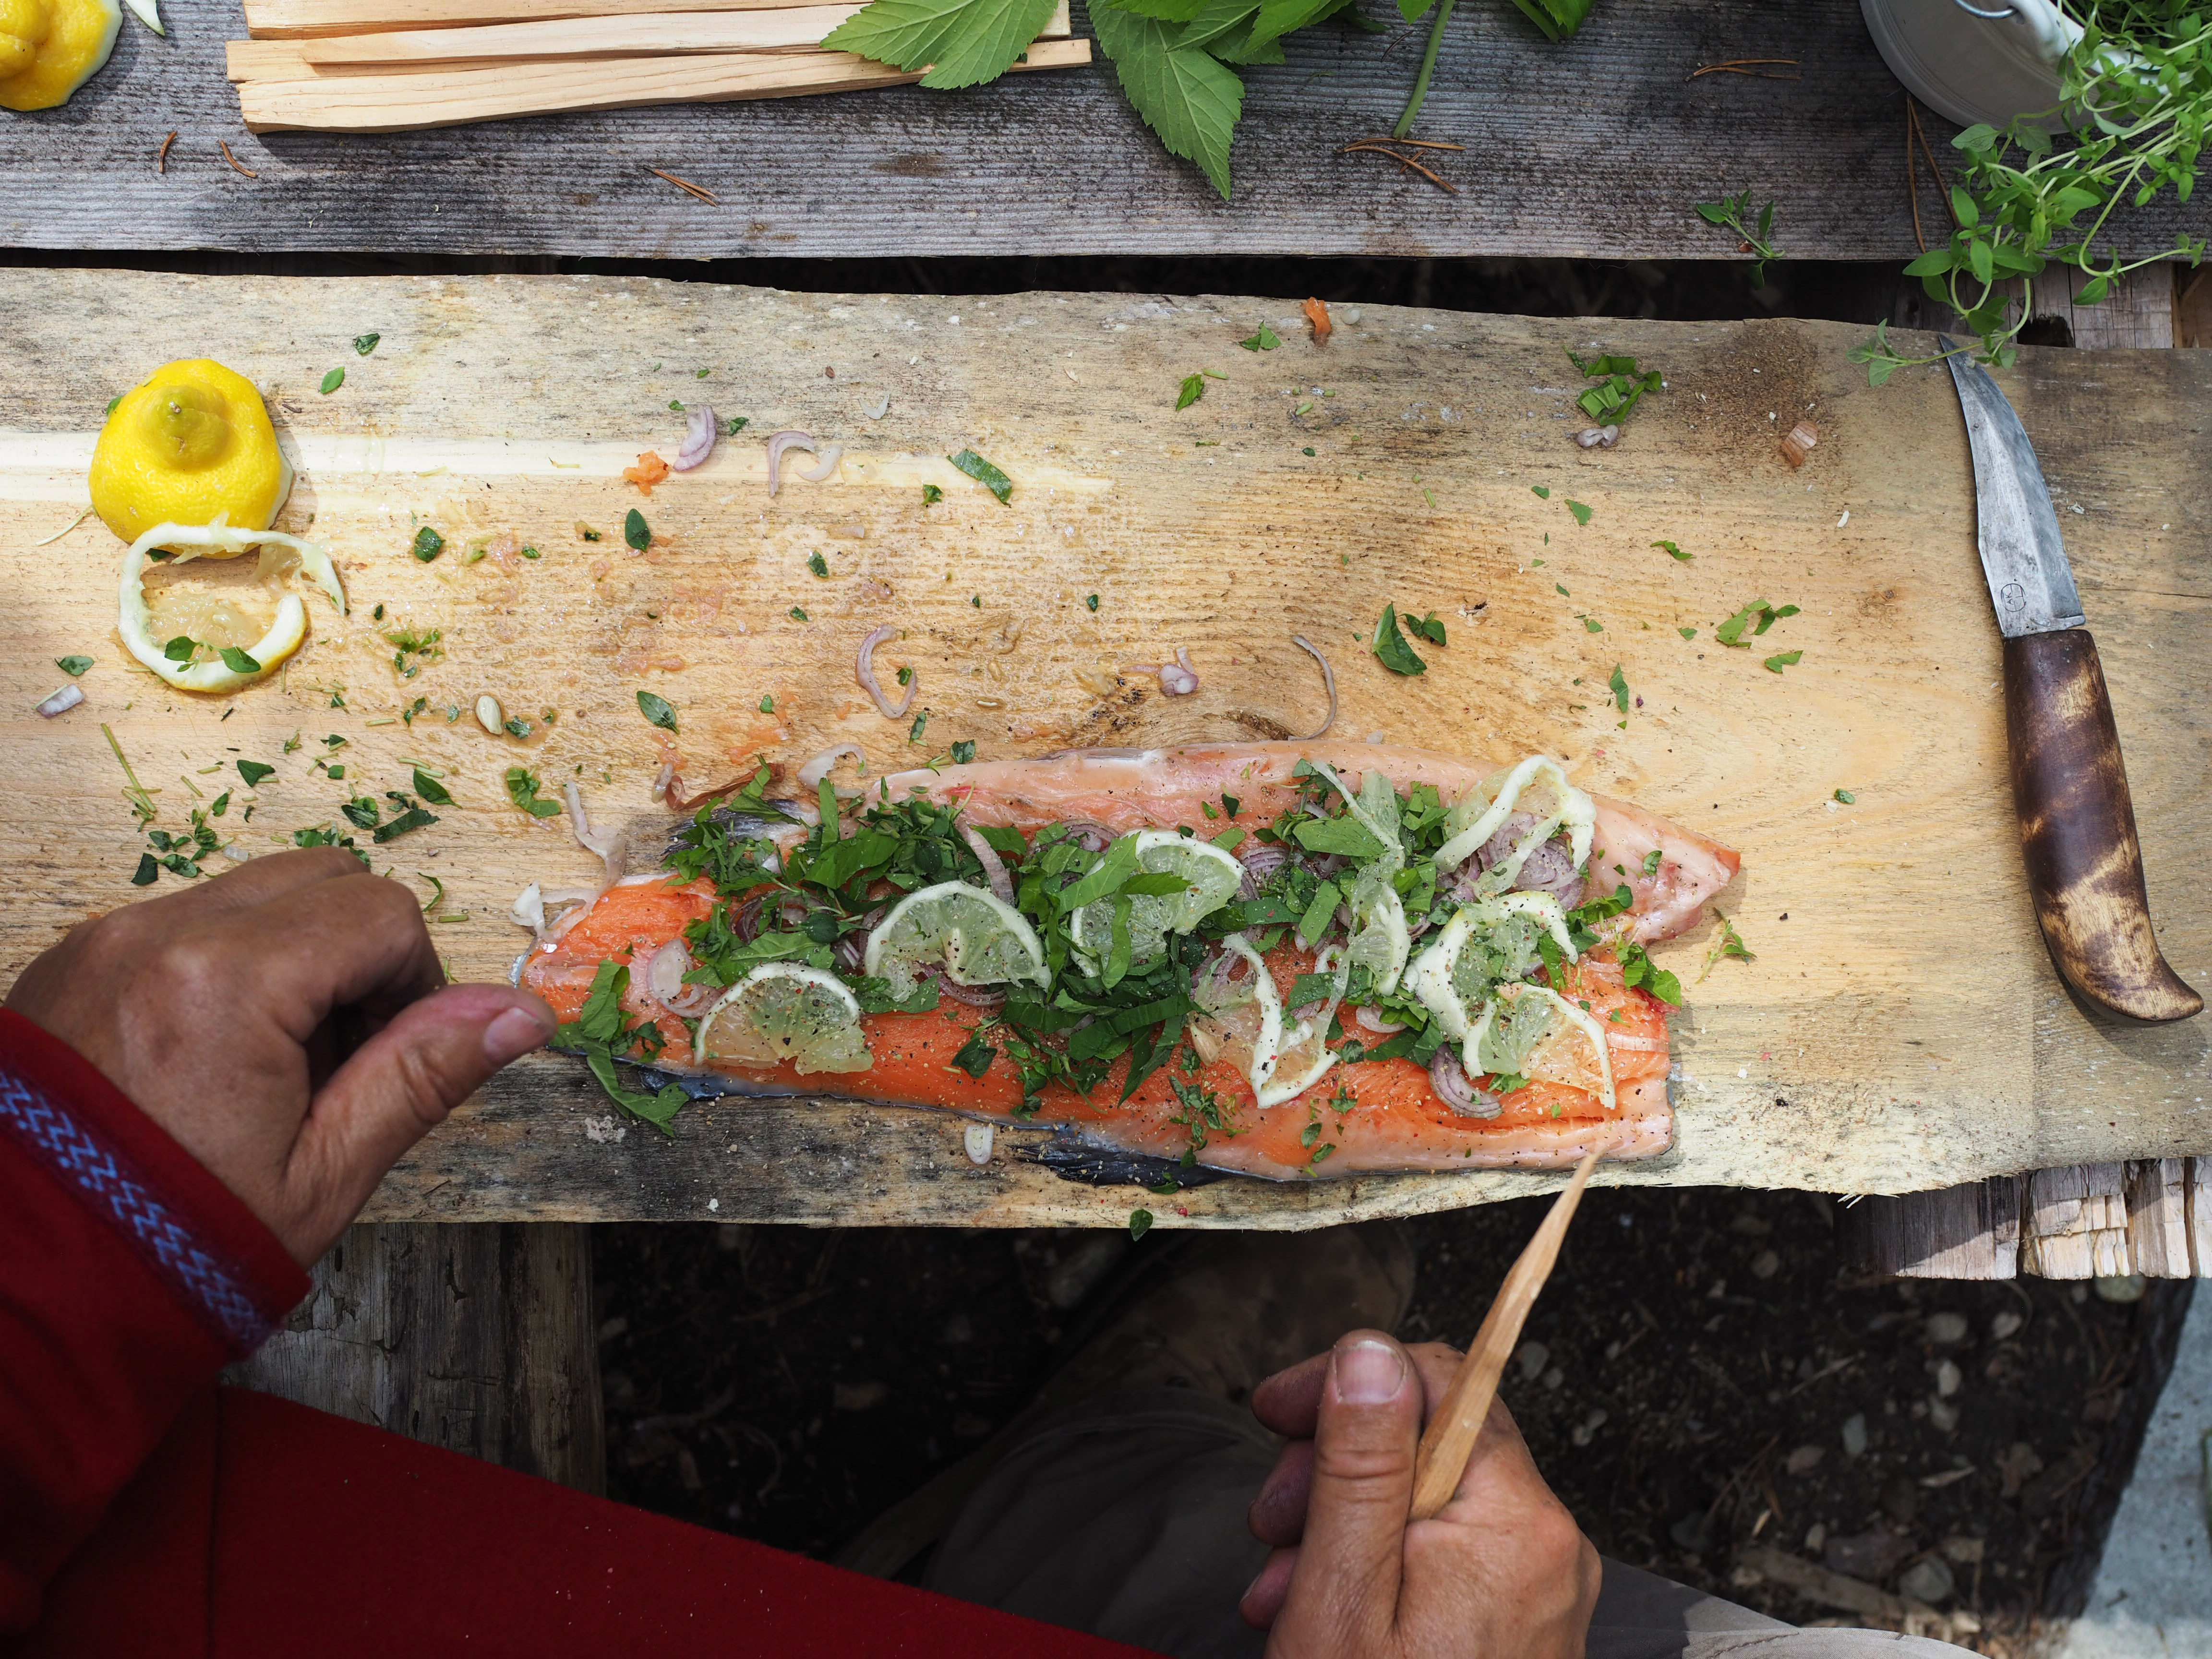 Photo: Nevada Berg  Preparing the plankefisk with shallots, herbs, and lemon.